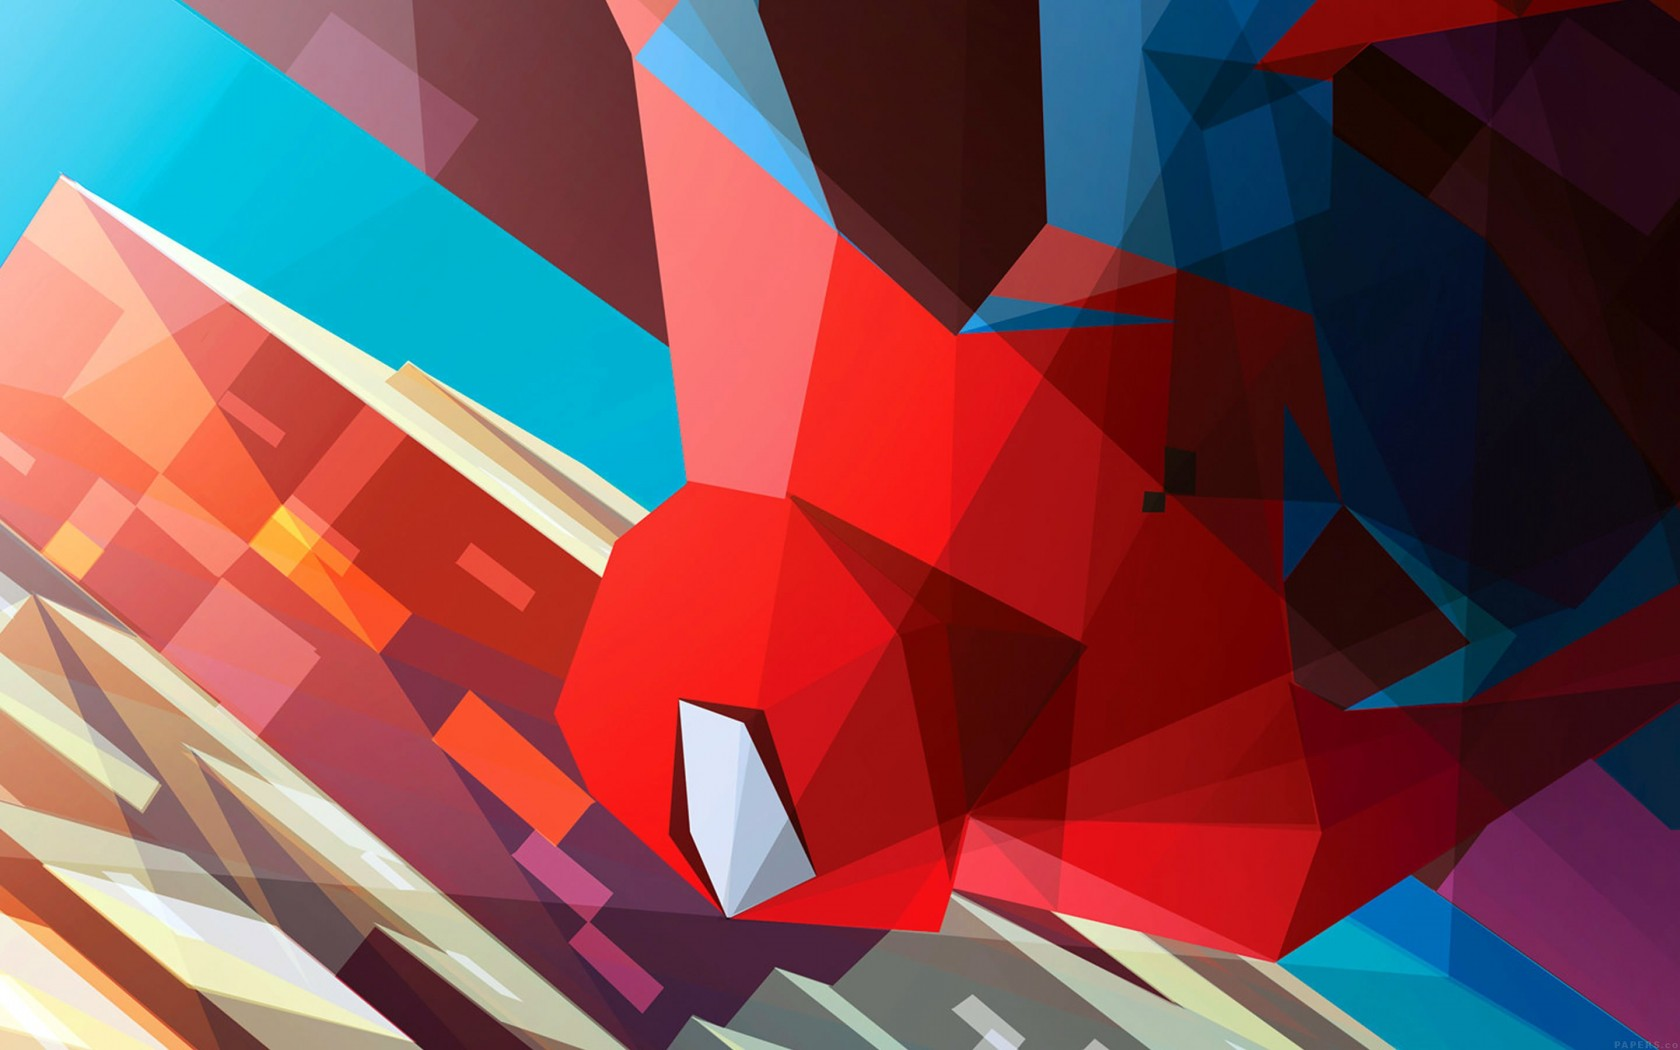 Spiderman Low Poly Illustration Wallpaper for Desktop 1680x1050